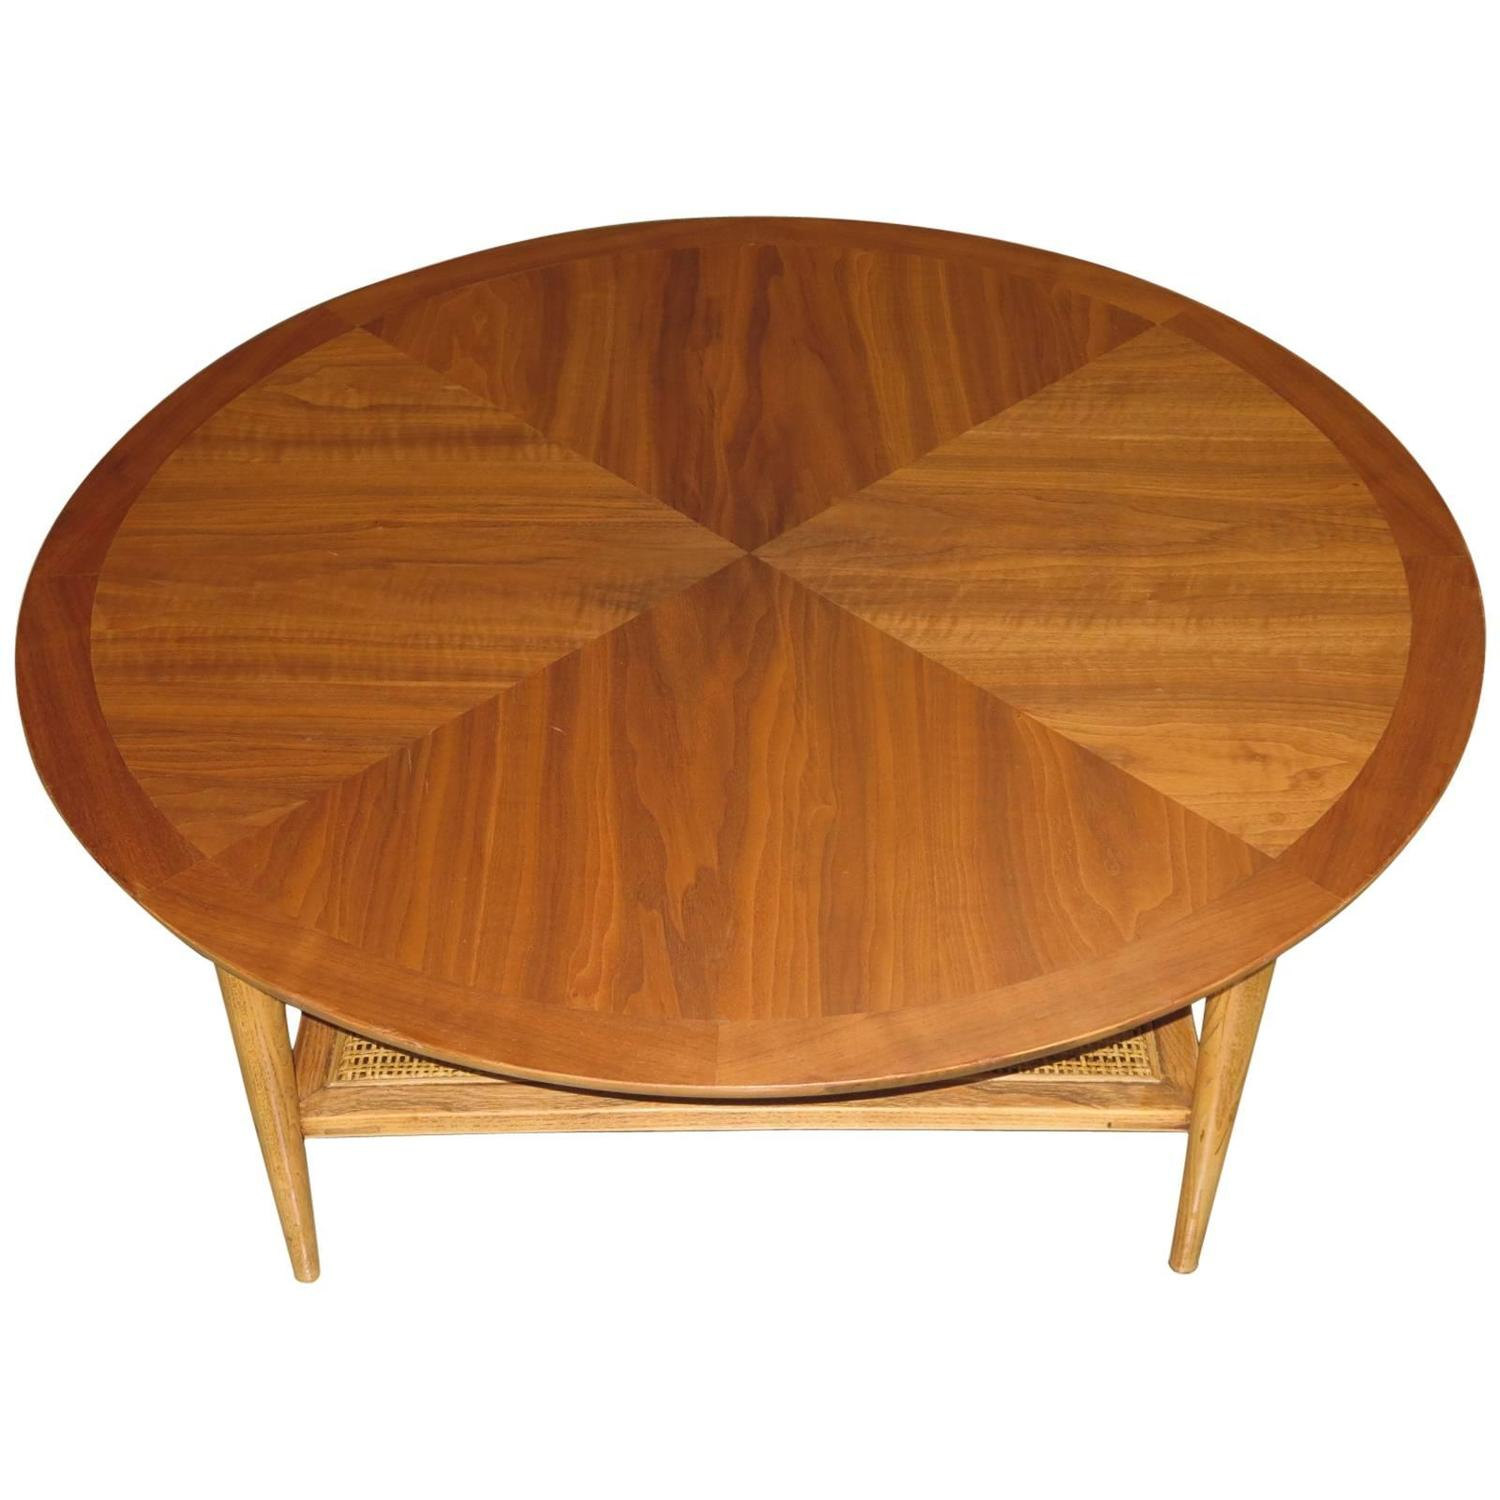 Lane Switchblade Coffee Table: Round Coffee Table By Lane At 1stdibs